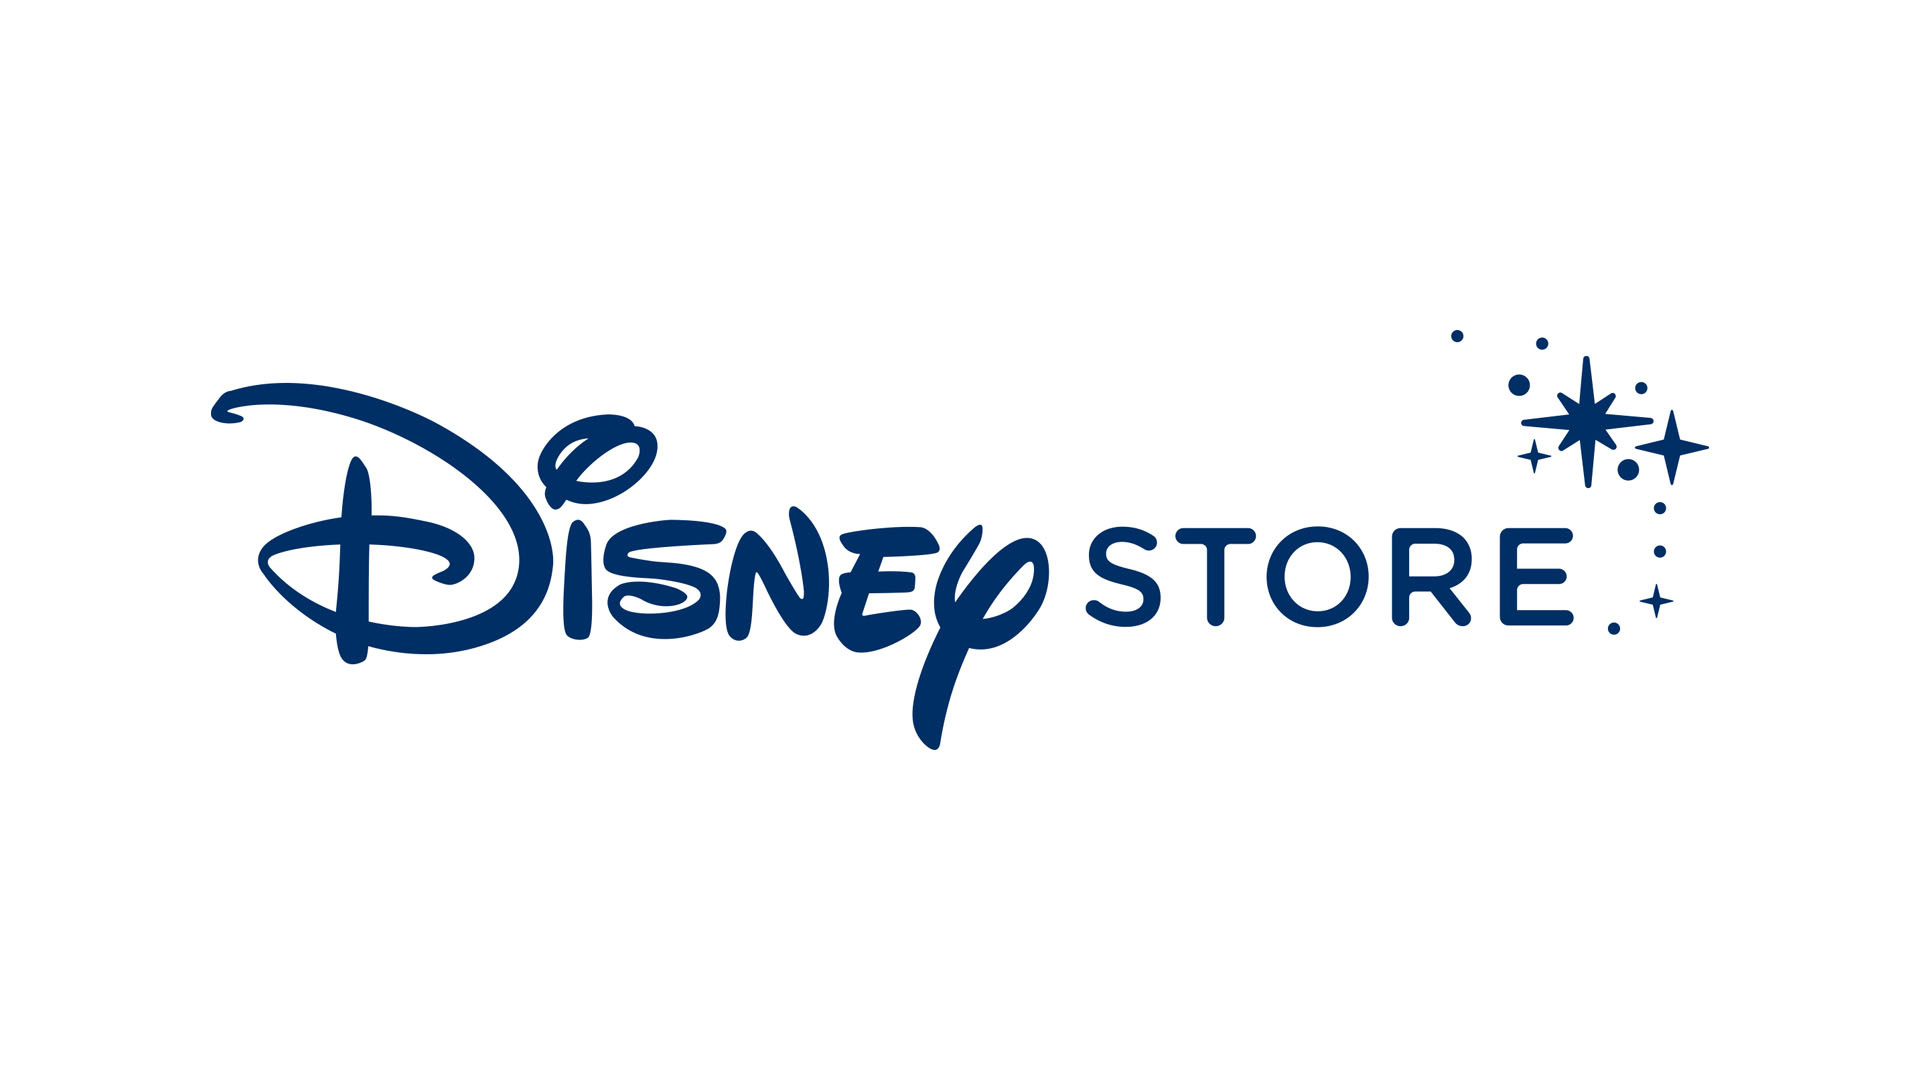 The Disney Store offers all that you would imagine from one of the world's most famous entertainment companies, with all your favourite characters, from Donald Duck to Mickey Mouse.